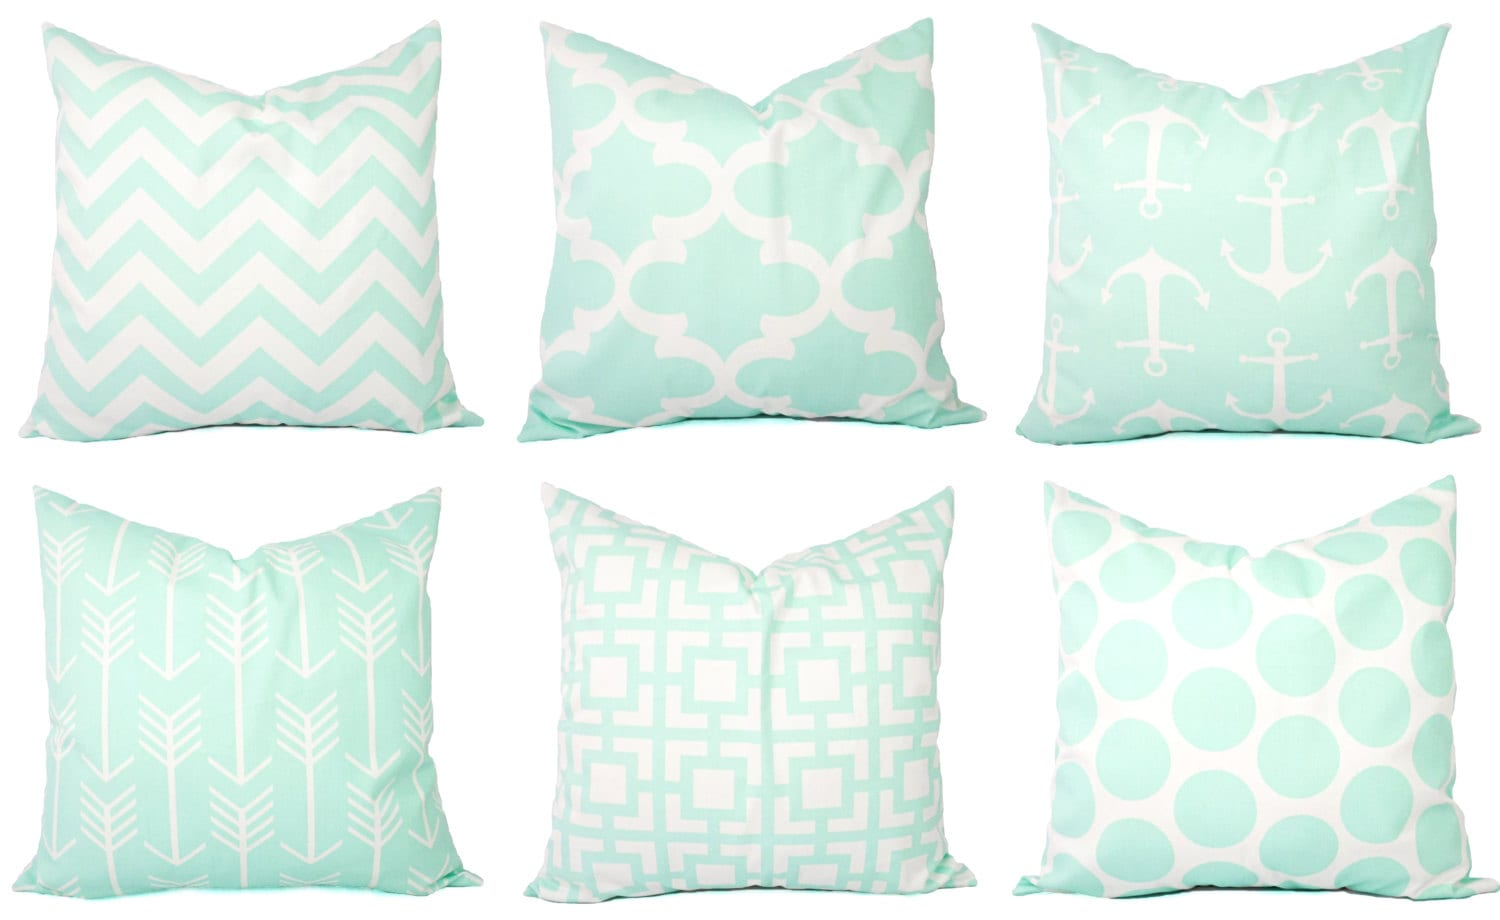 Ultrasoft Euro Square Decorative Sham Pillow White : Mint Pillow Covers Mint Green and White Throw Pillows